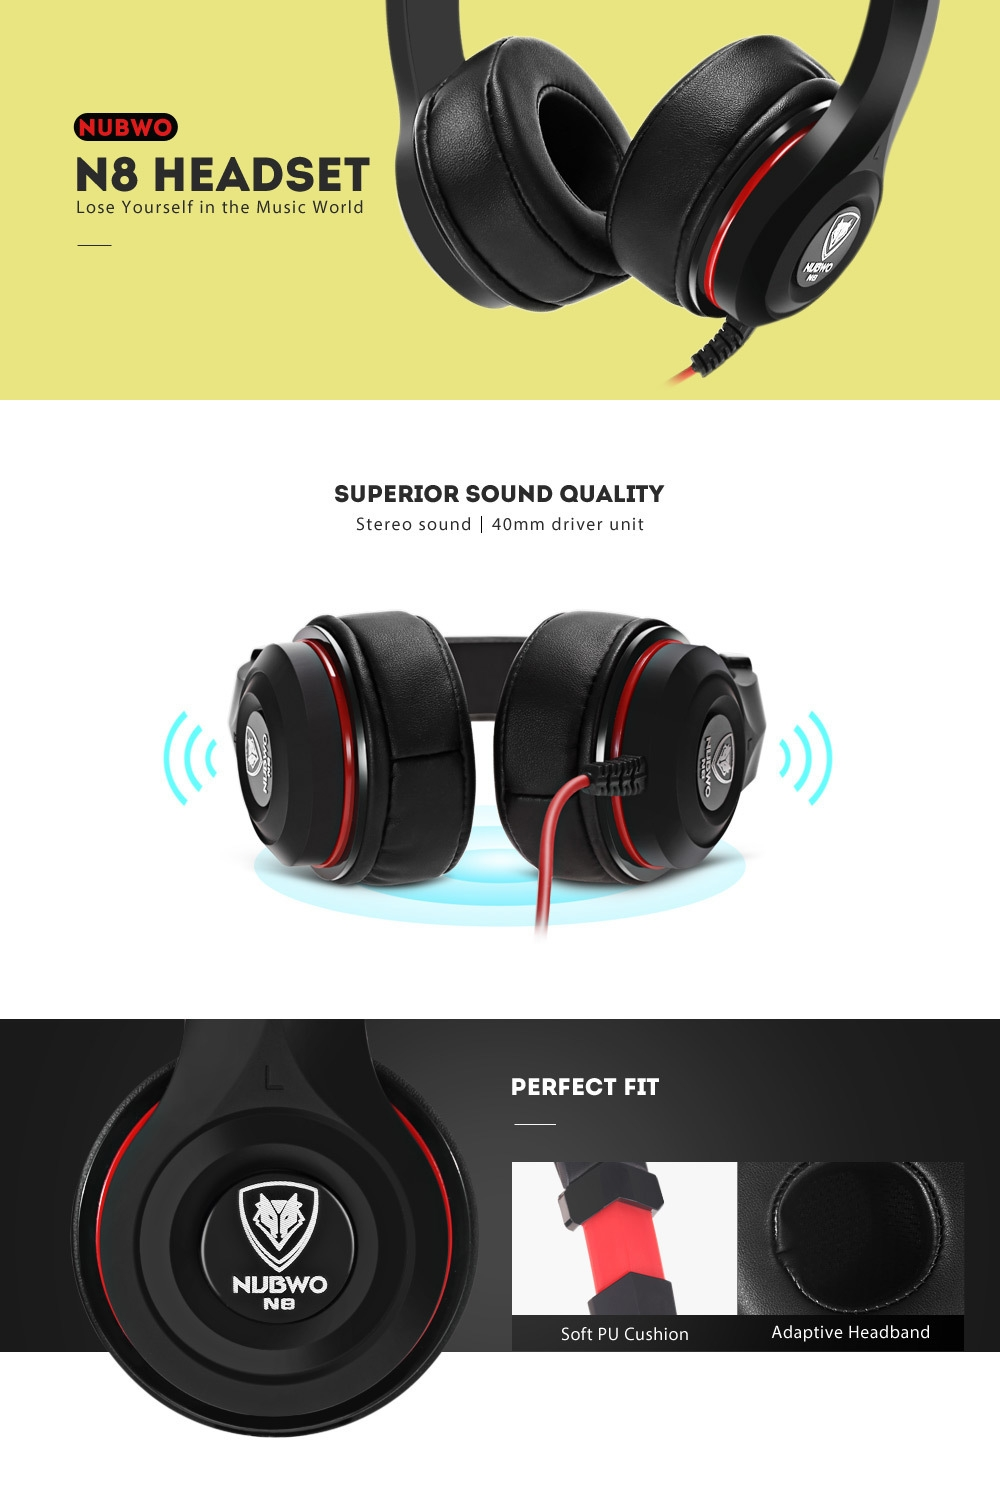 NUBWO N8 3.5mm Stereo Wired Music Stretchable Headphones In-line Control